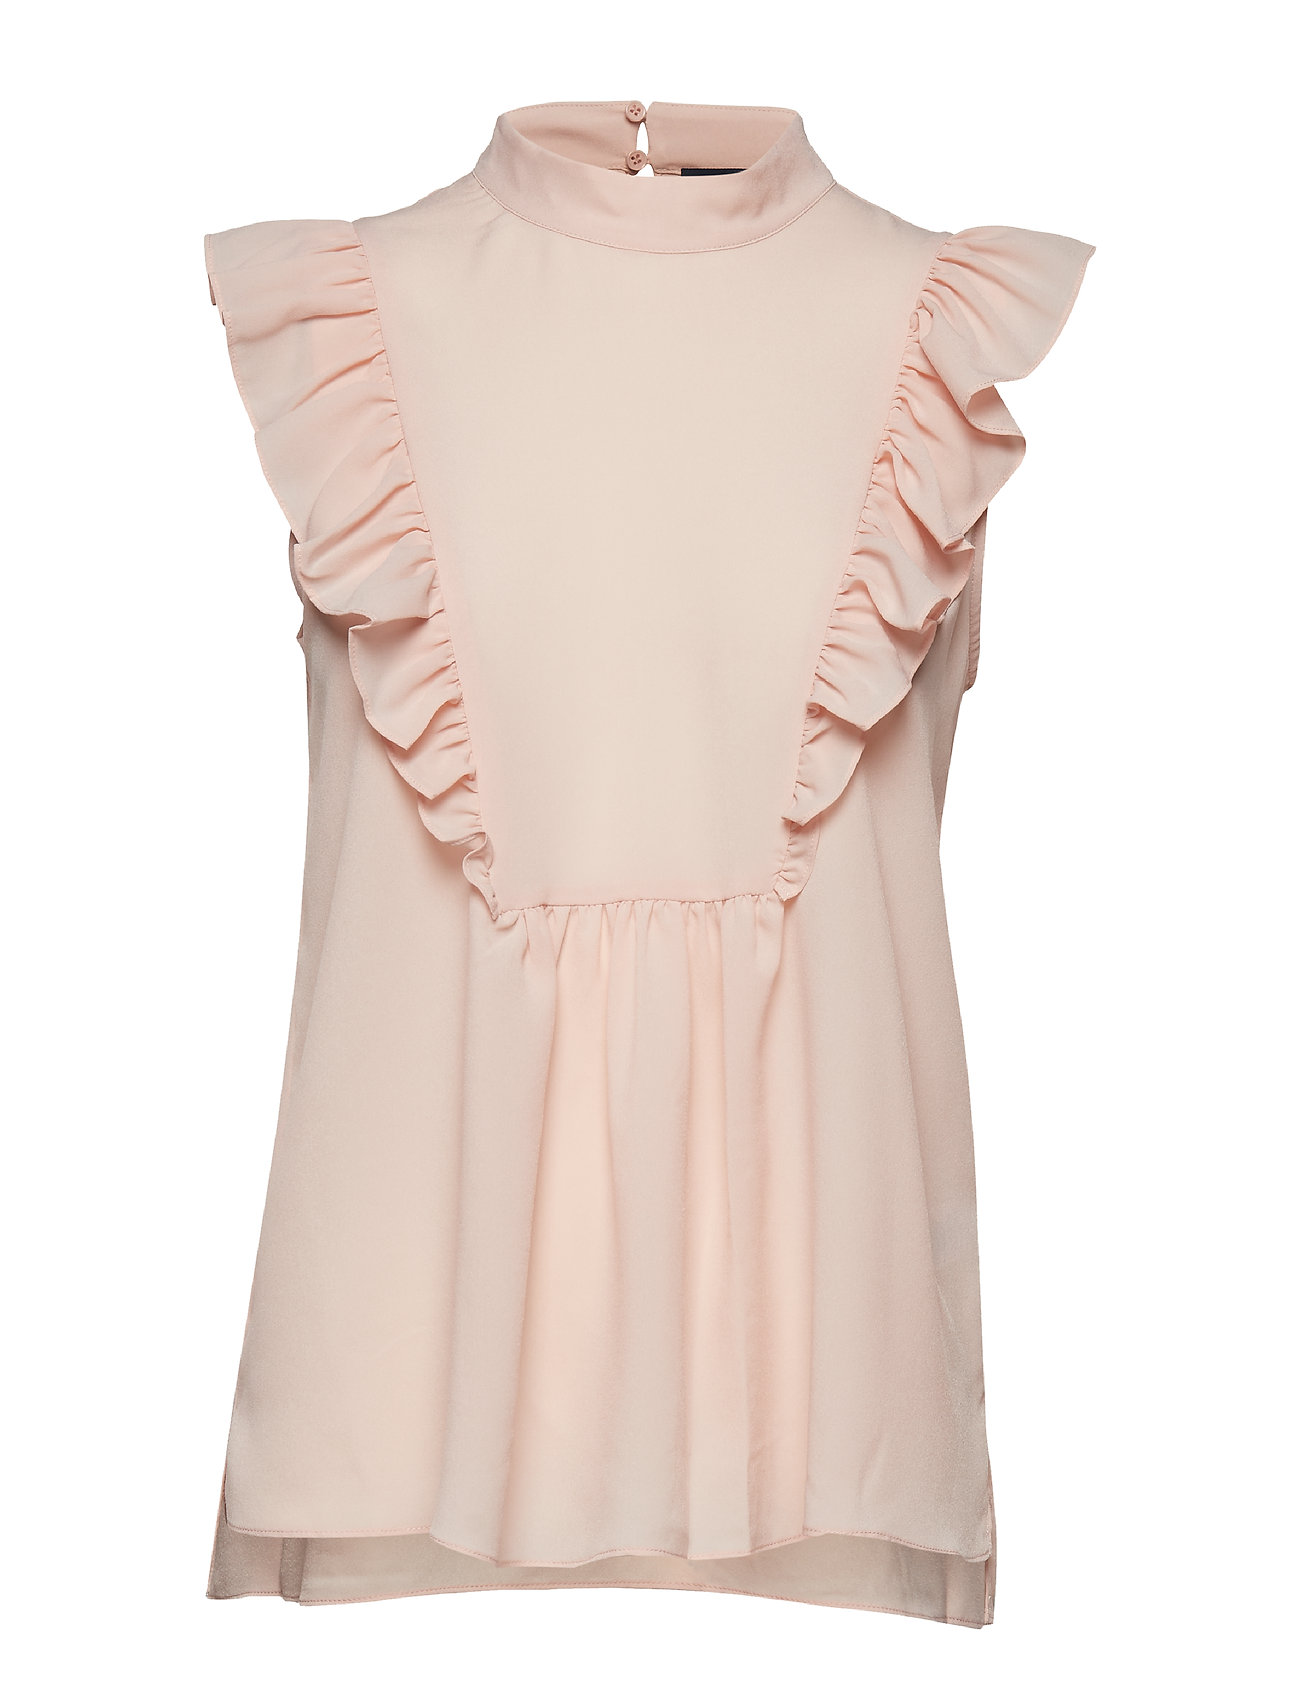 French Connection CREPE LIGHT SOLID MOCK NECK TOP - SATIN SLIPPER